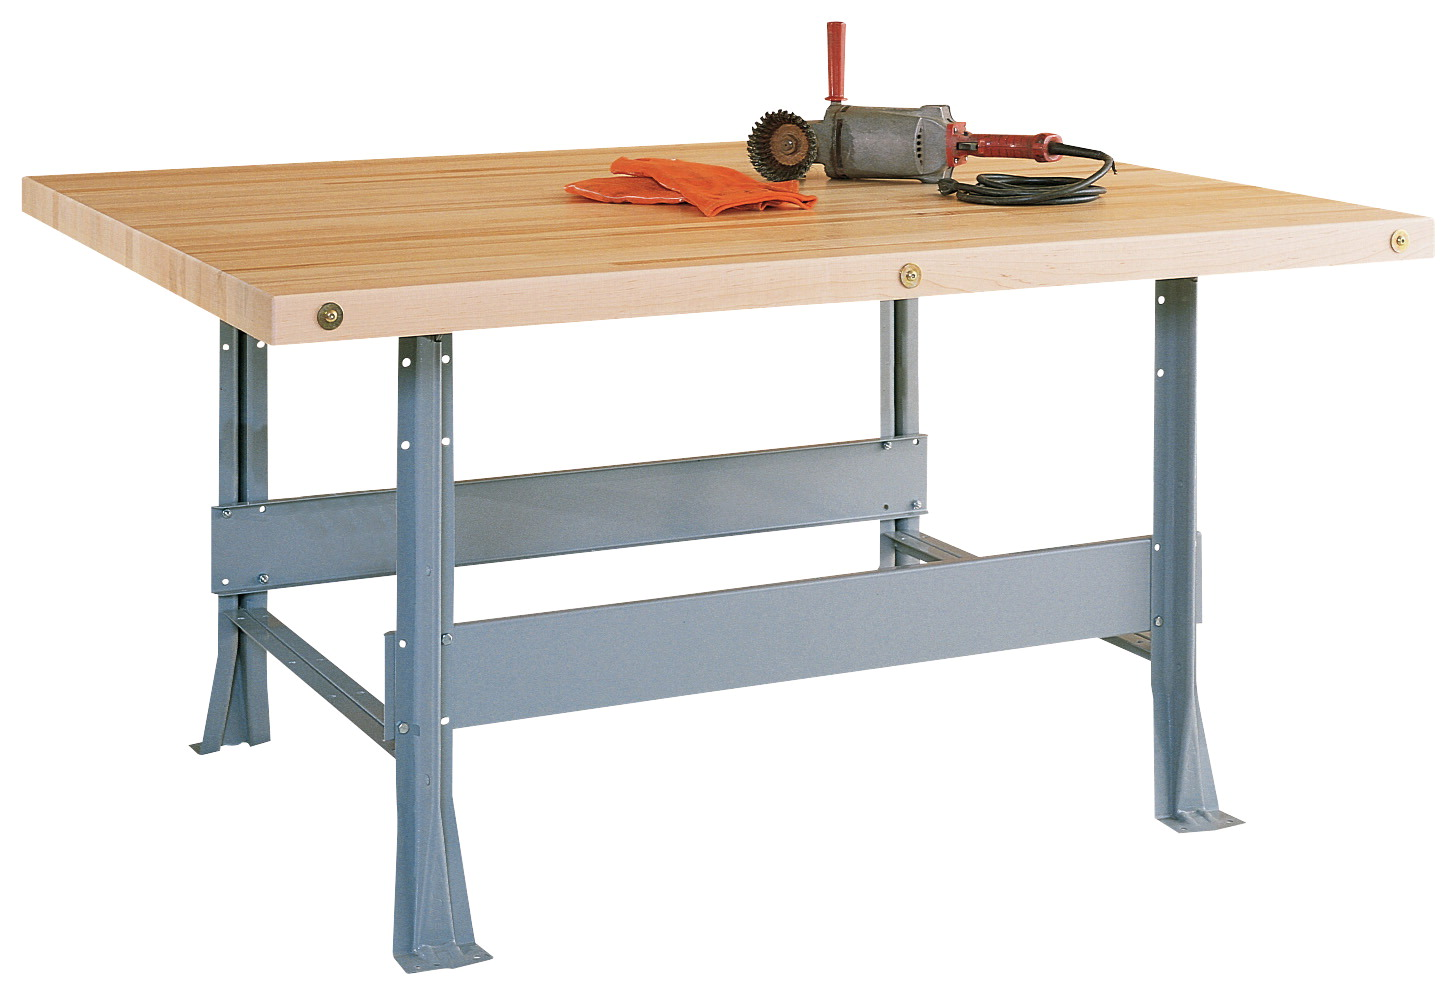 Diversified Woodcrafts 2 Station Workbench with 2 Vises, 64 x 28 x 32-1/4 Inches, Various Options